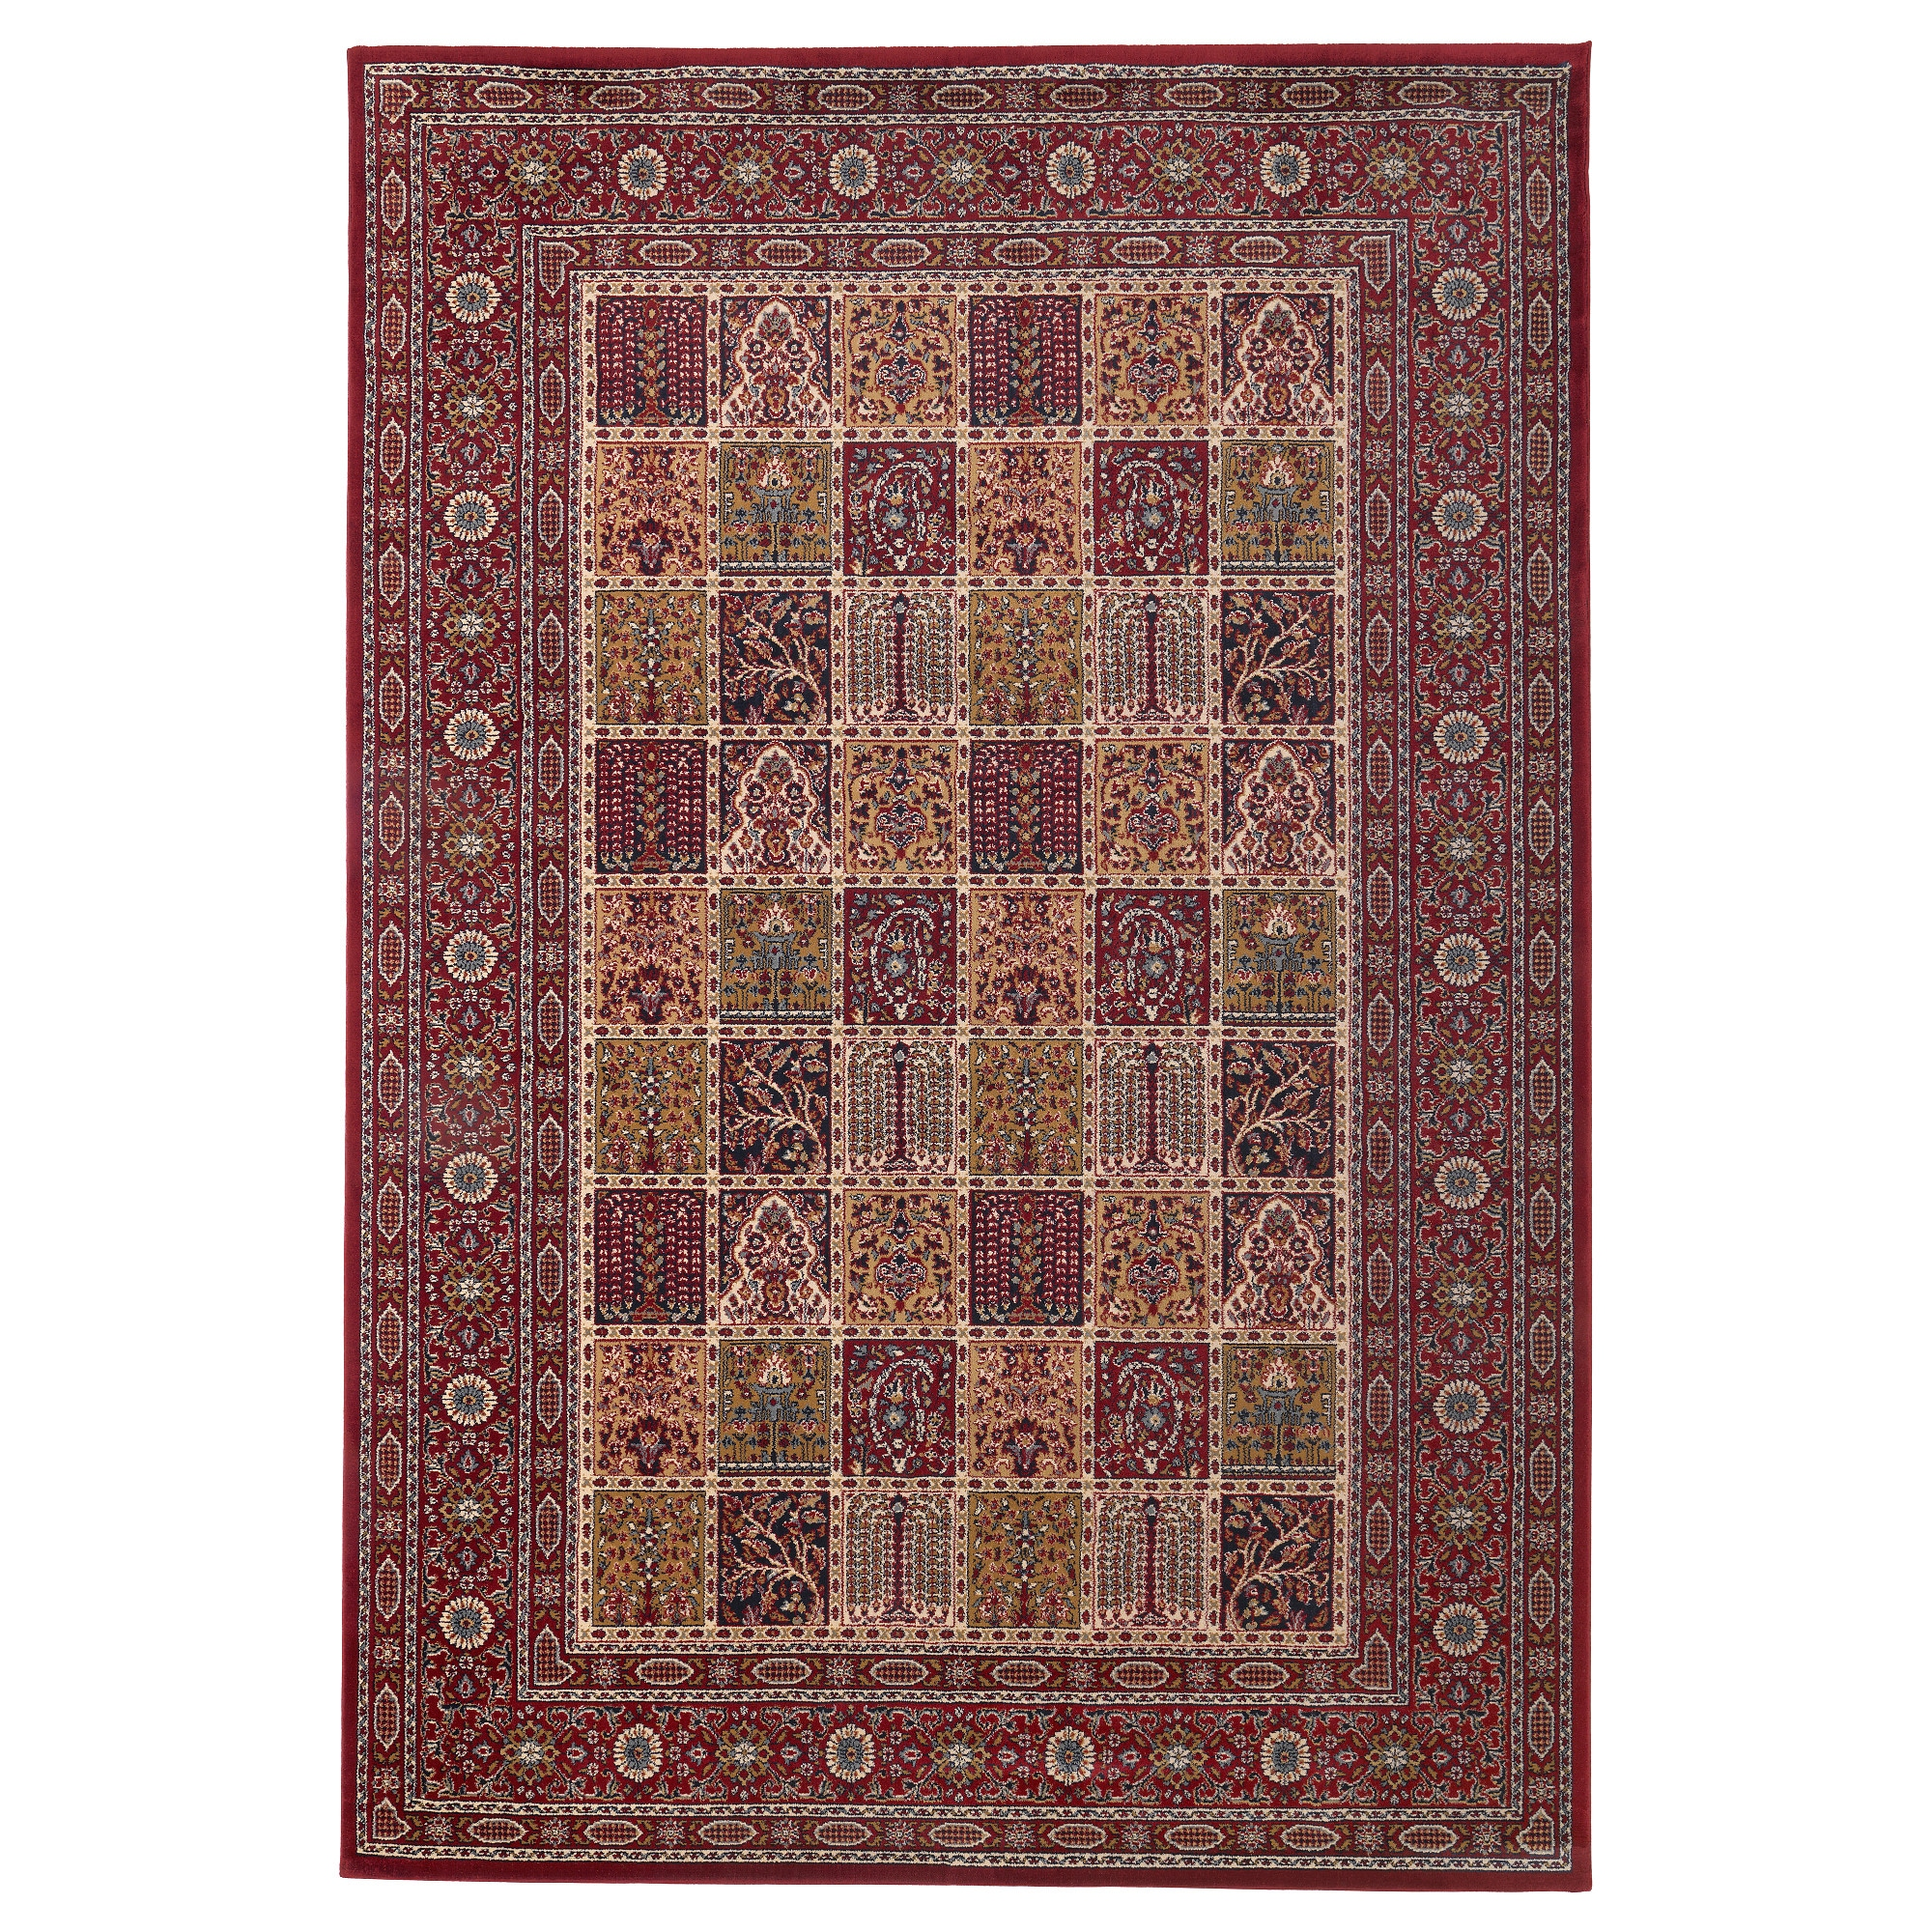 runner sale stores htm binding consumers store clearance warehouse wide rug tape img carpet